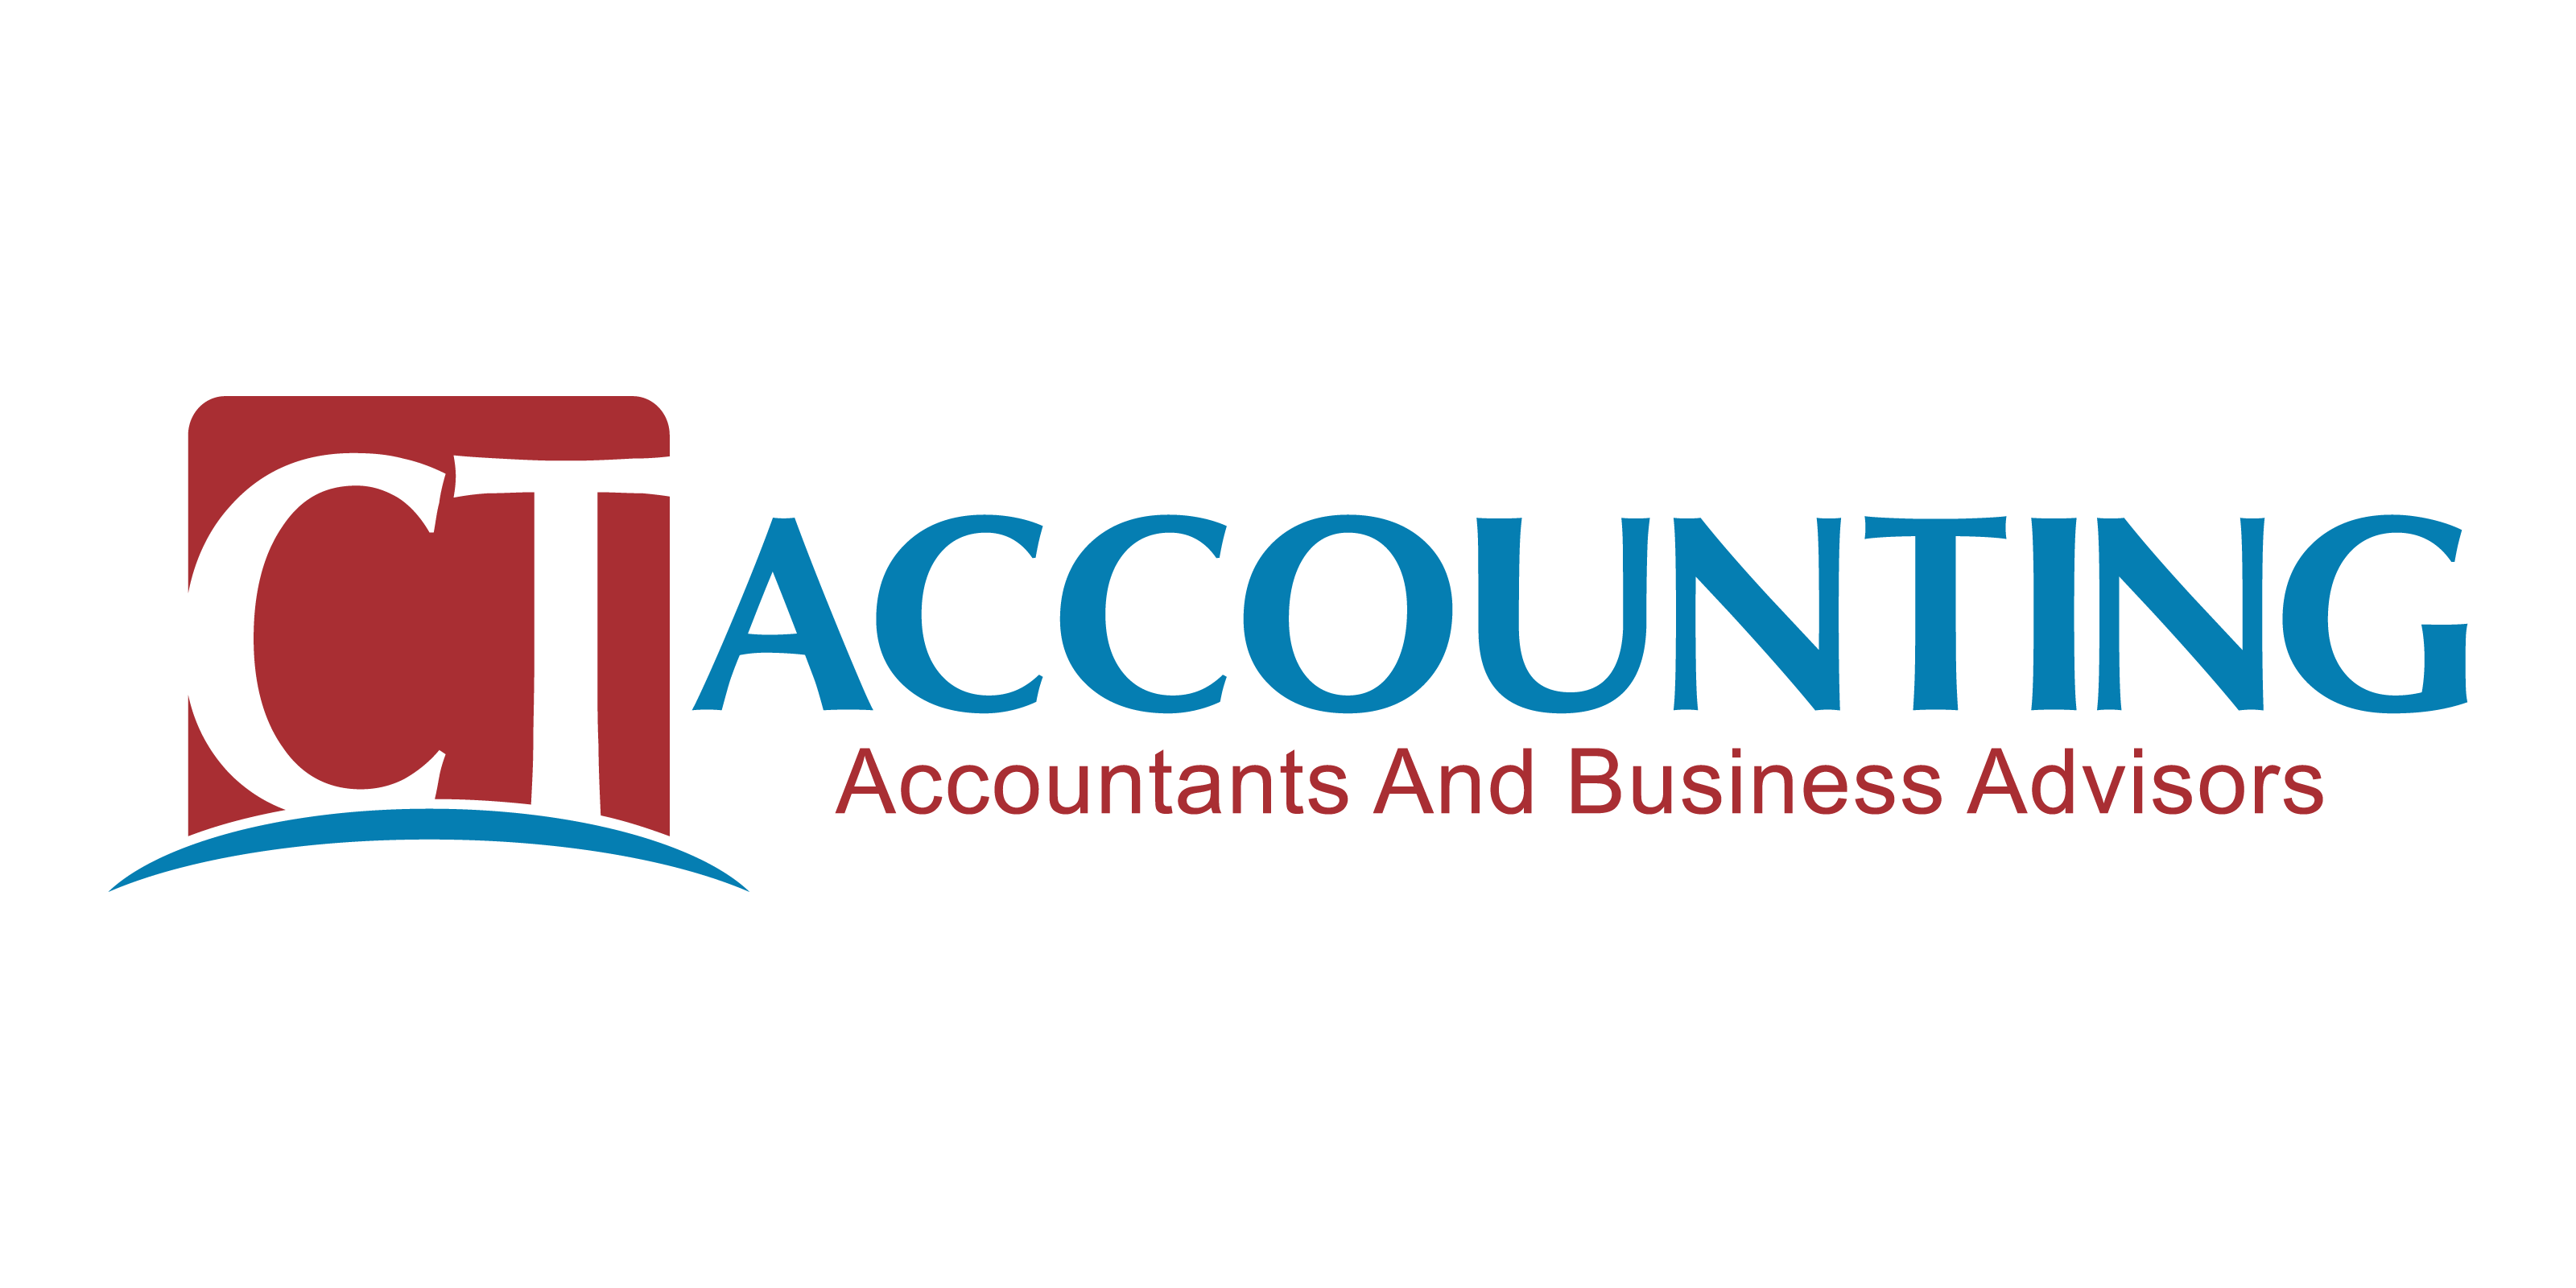 CT Accounting business logo